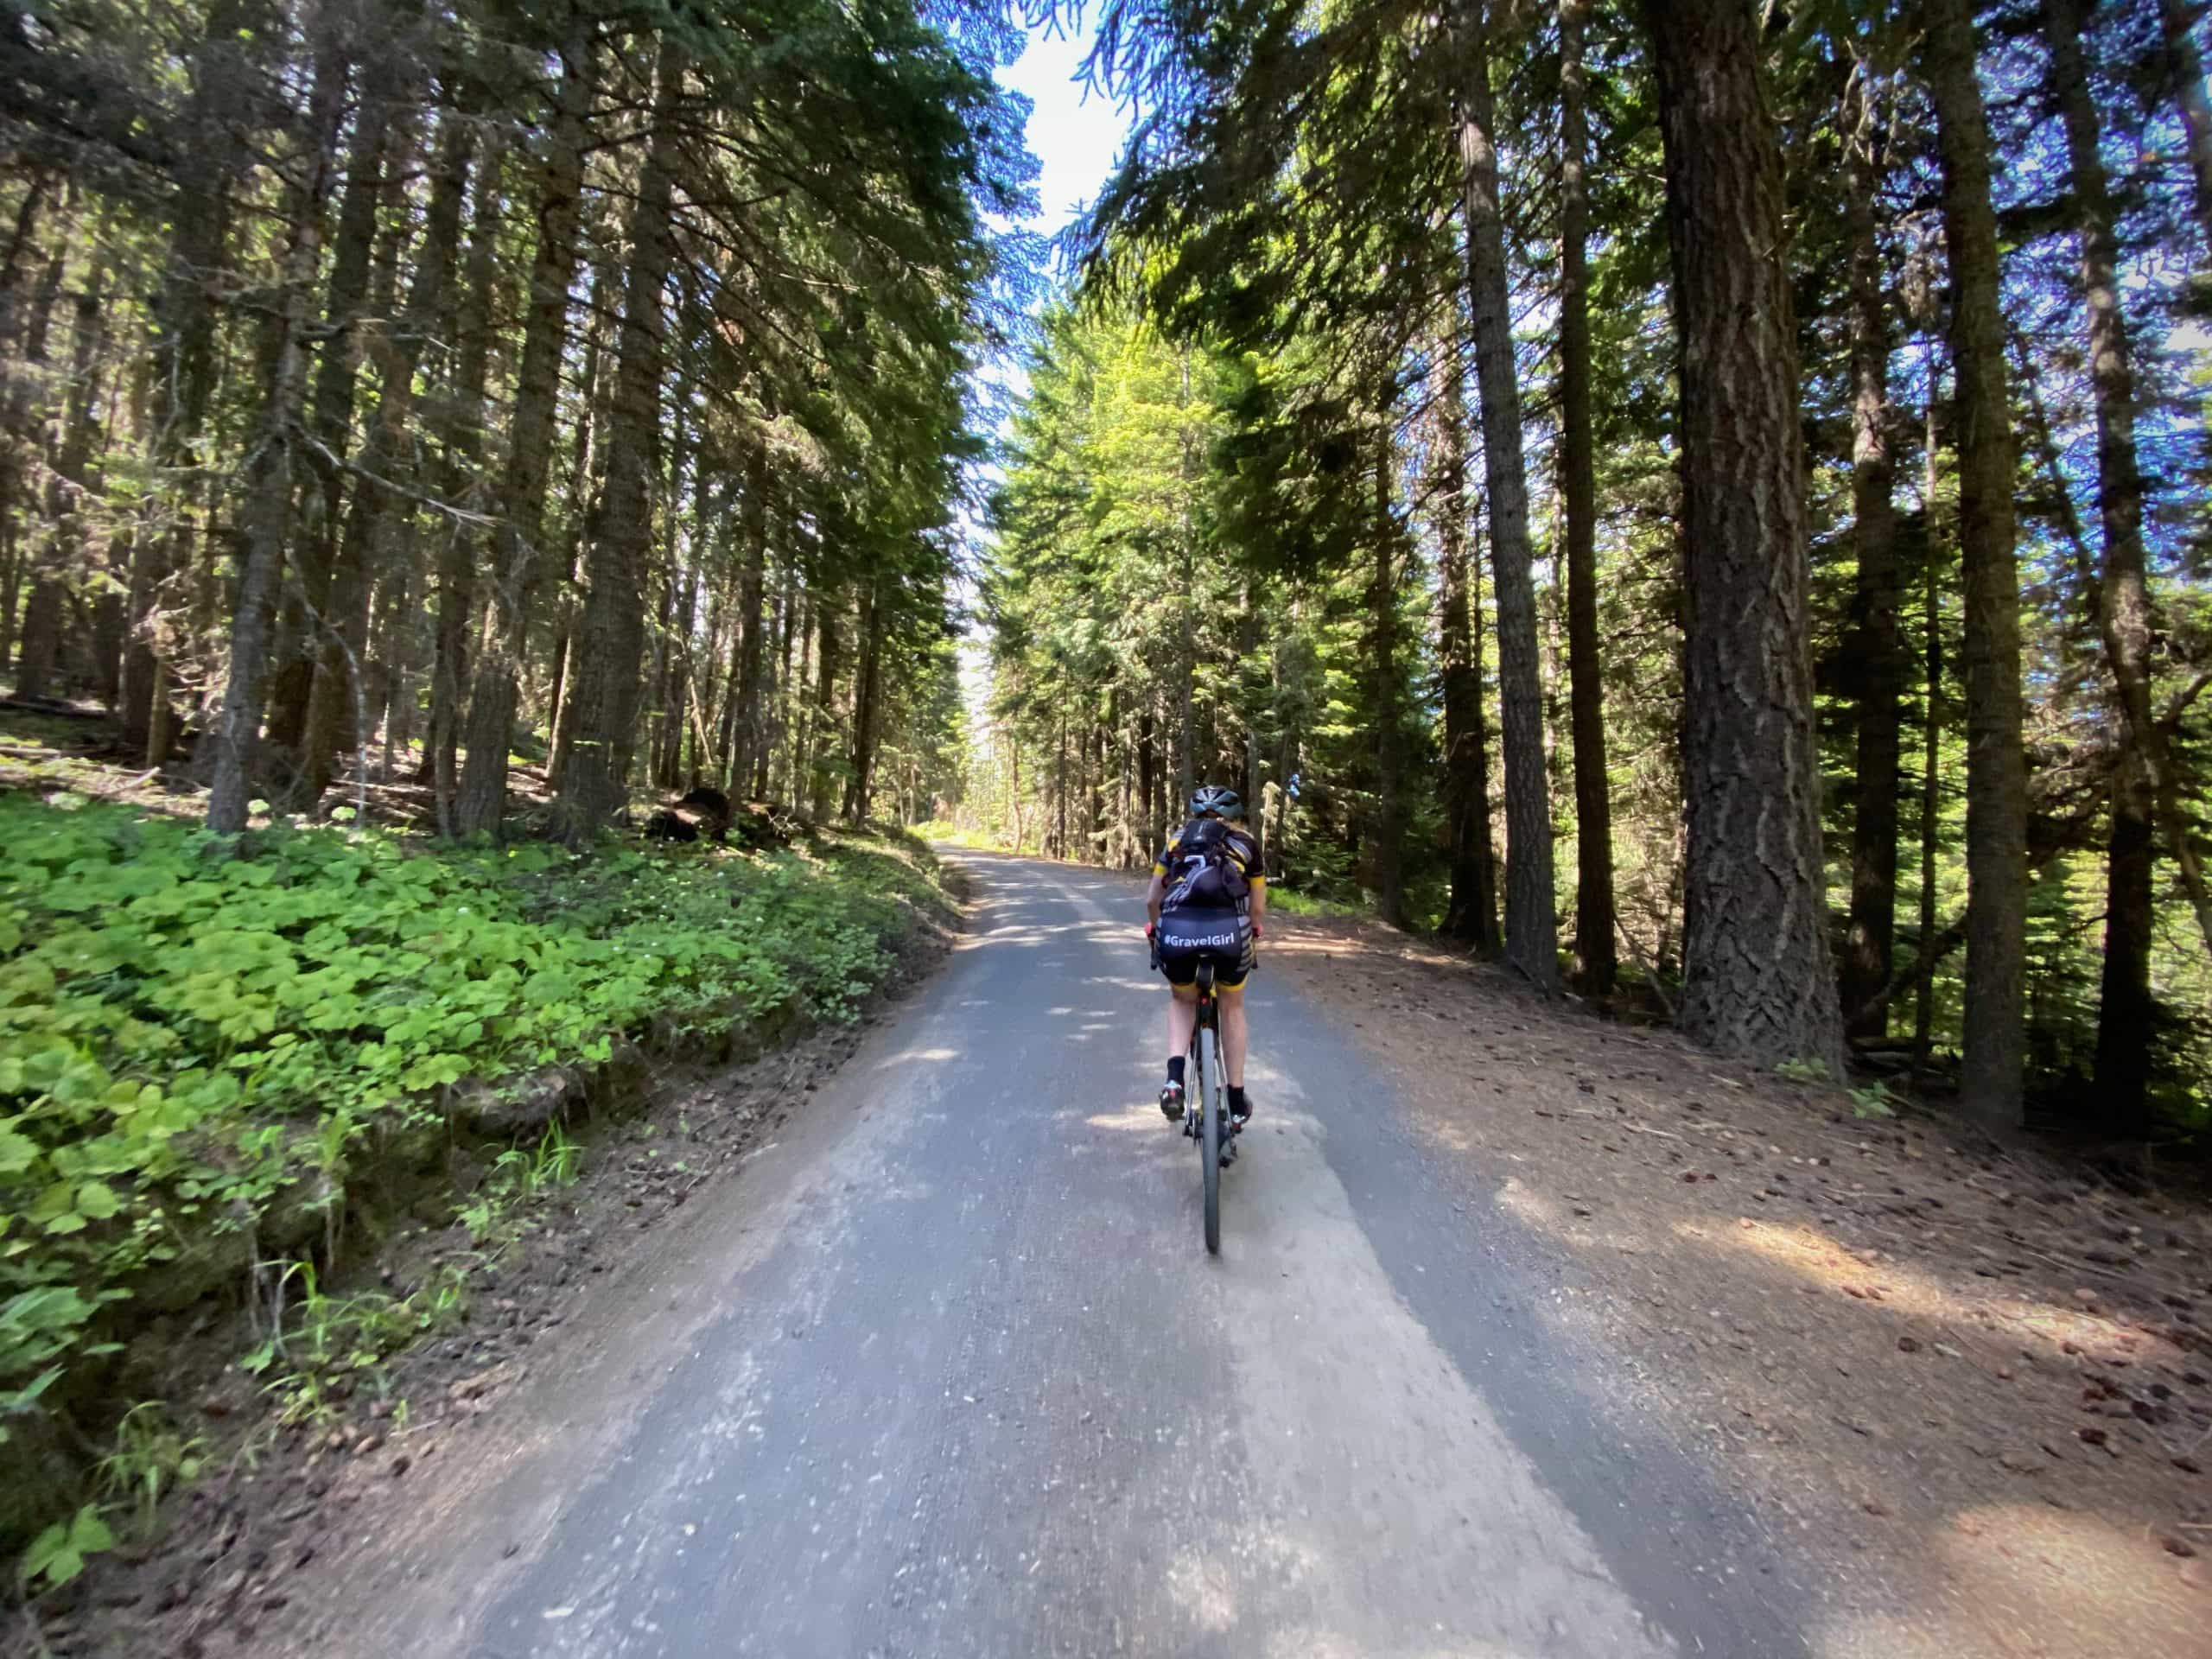 Gravel Girl riding up hill, in forest on Lookout Mountain road near Dufur, Oregon.